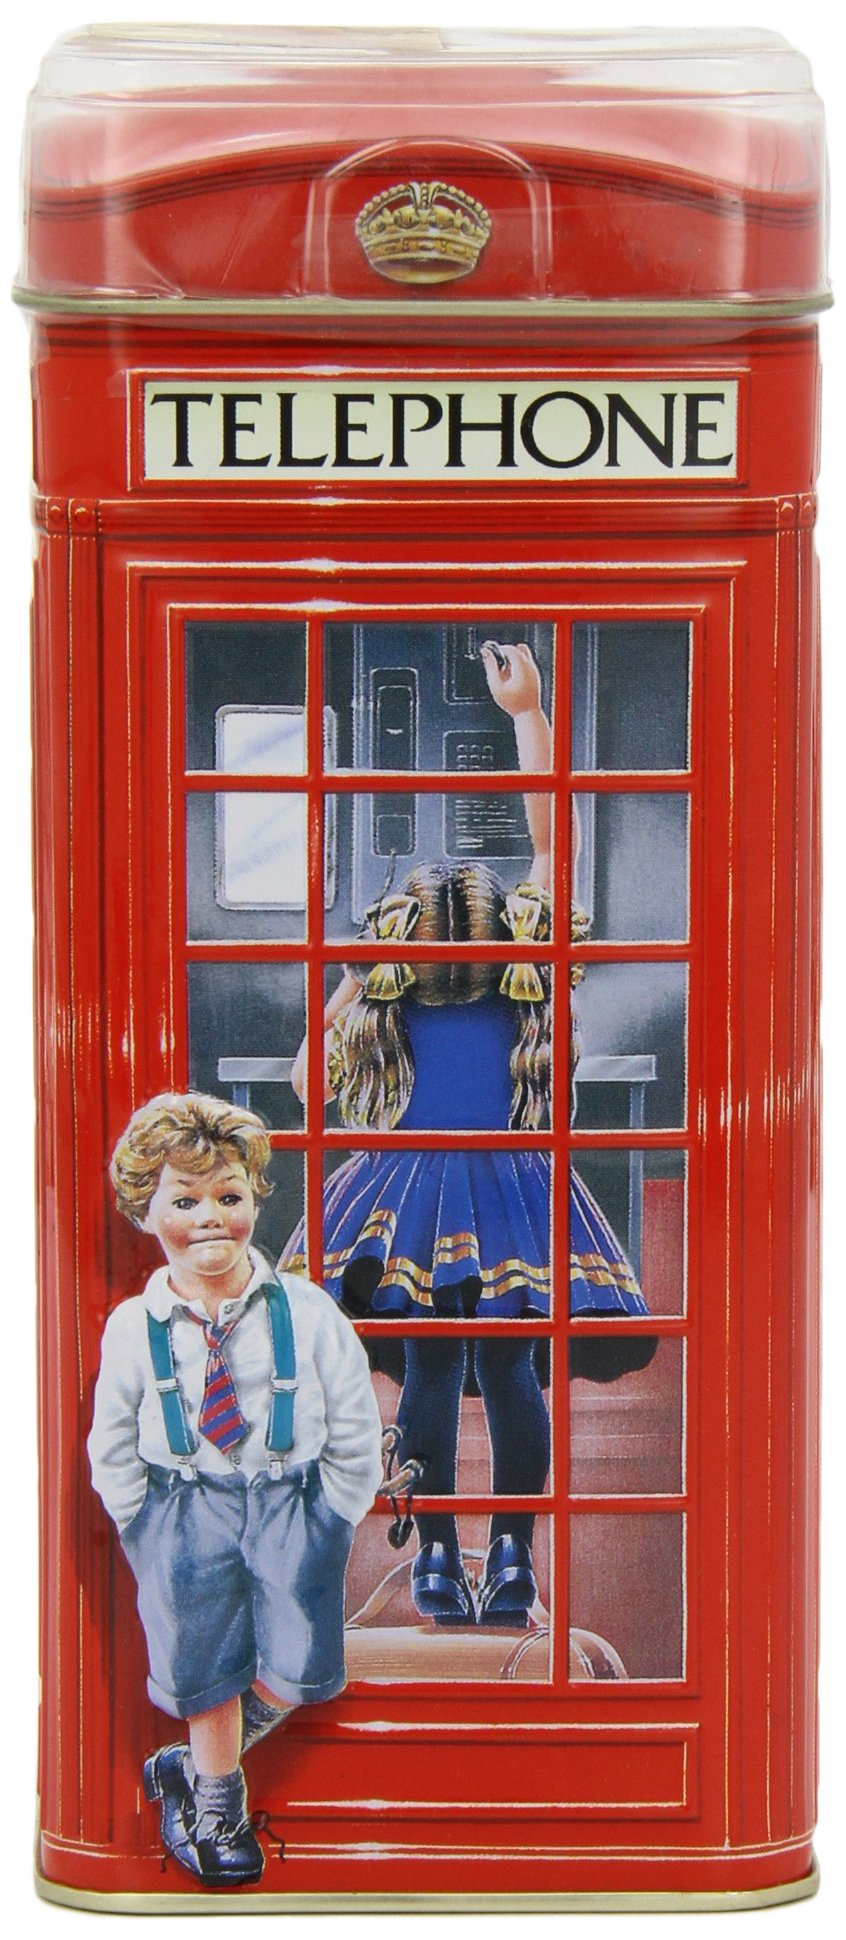 Collectible British Telephone Kiosk Money Box/Bank with 200g English Cream Dairy Toffee